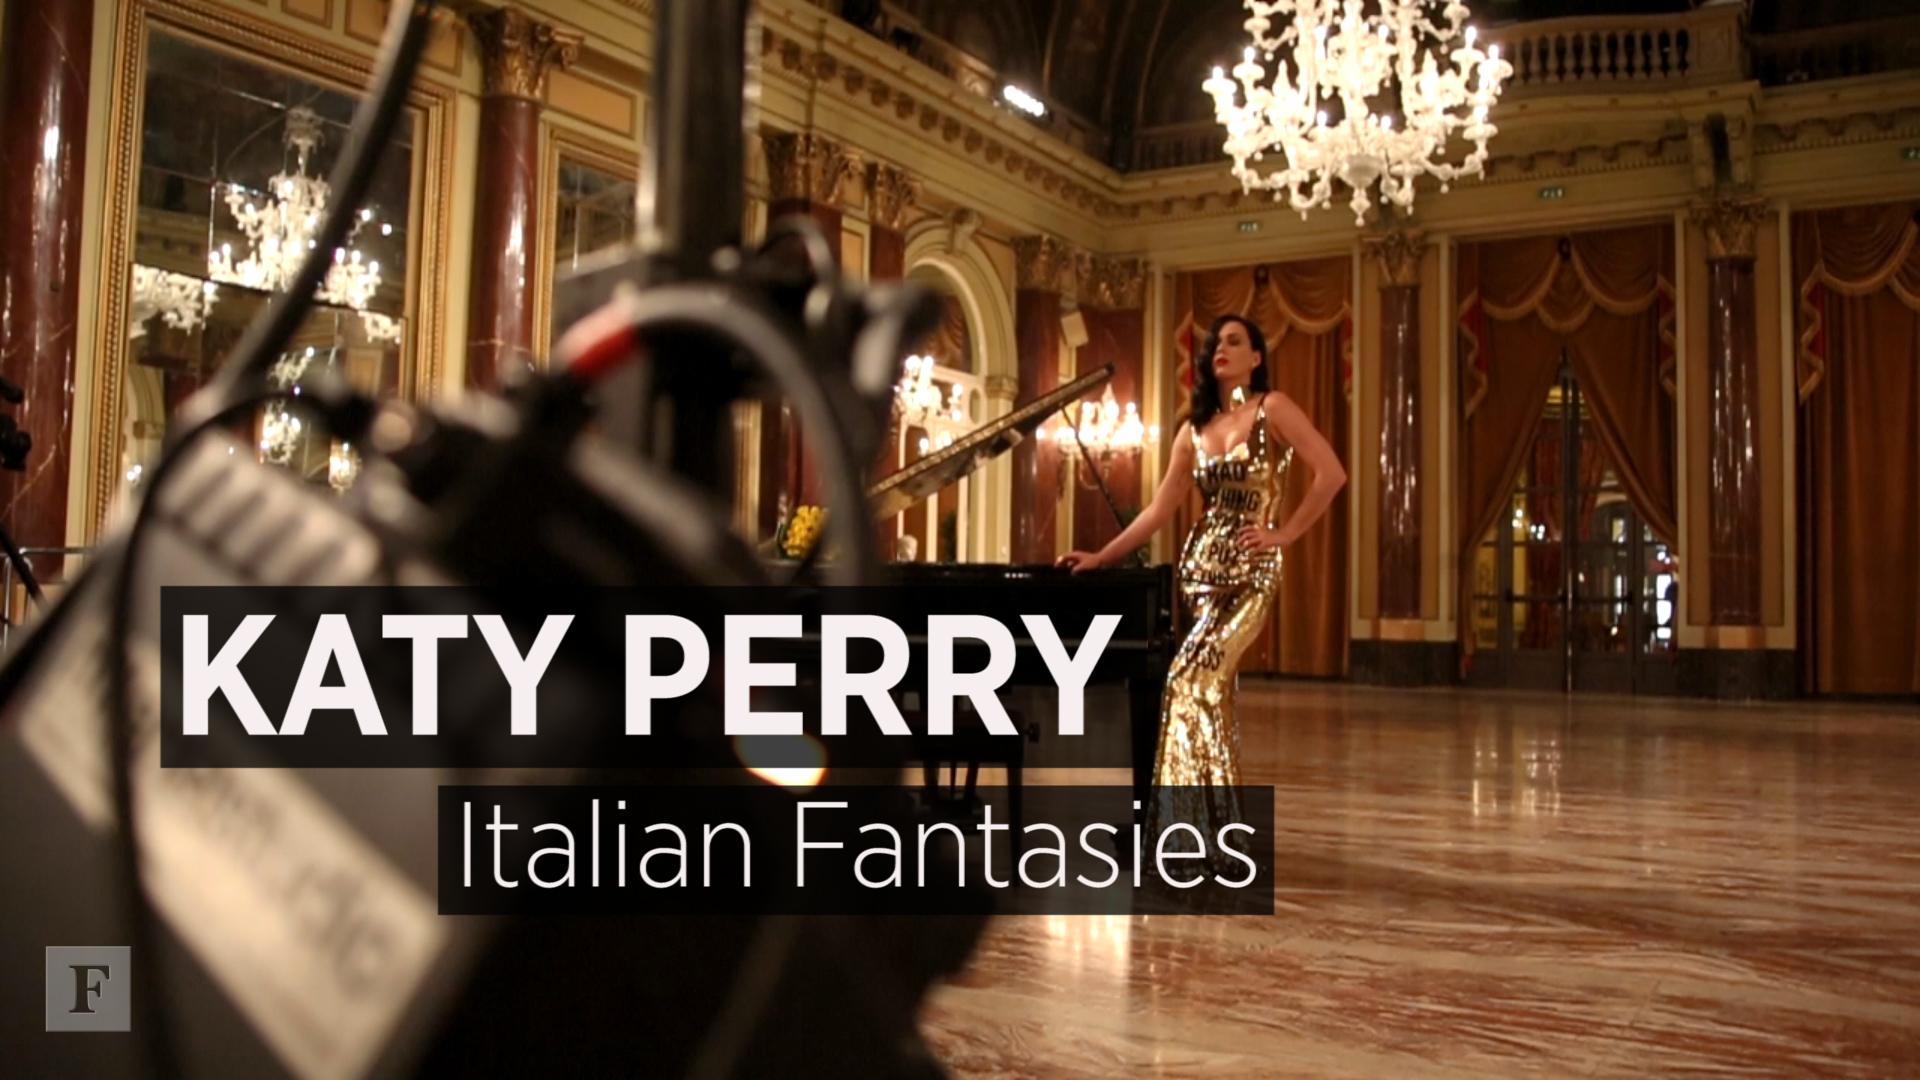 Katy Perry: Italian Fantasies